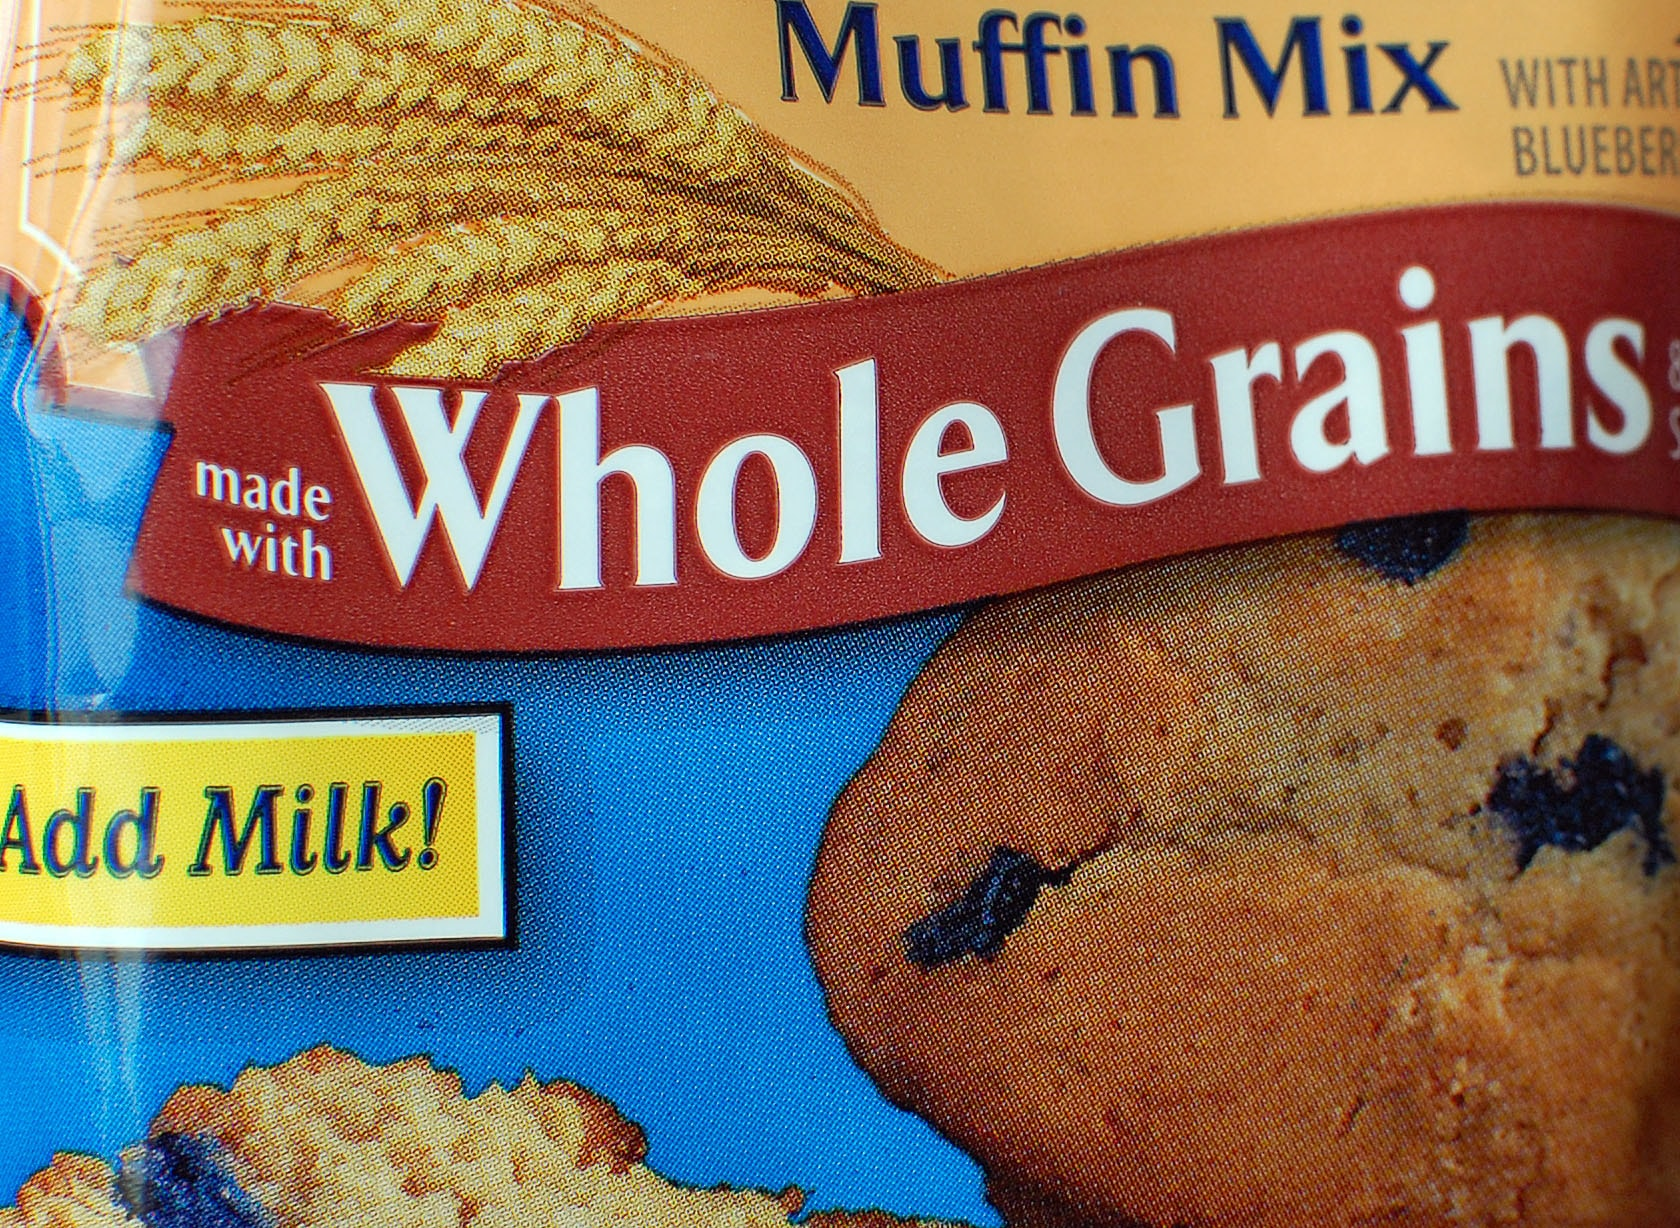 5 Misleading Food Label Claims